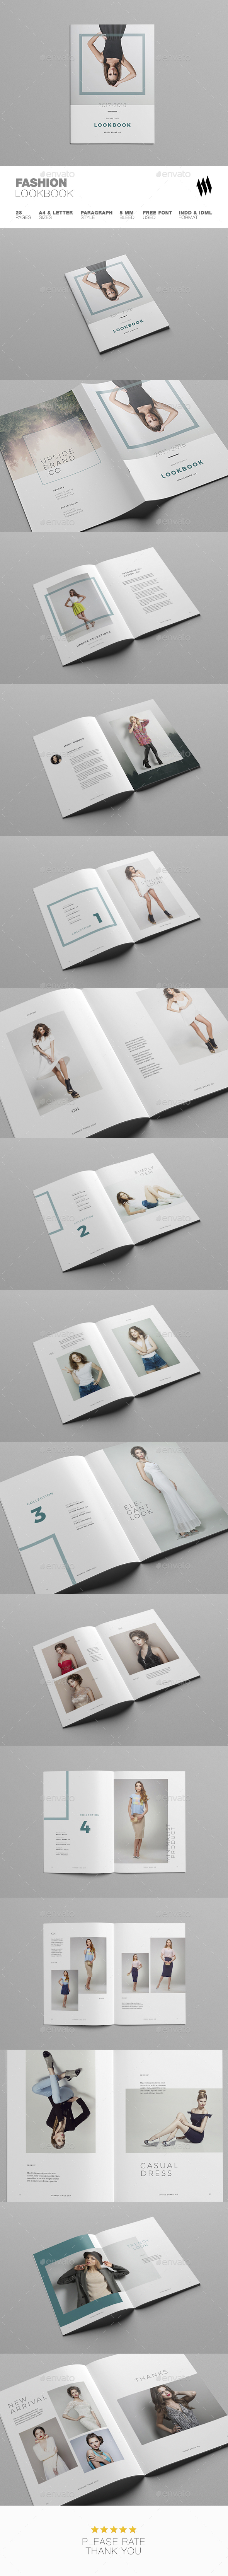 Fashion / Multipurpose Lookbook - Brochures Print Templates